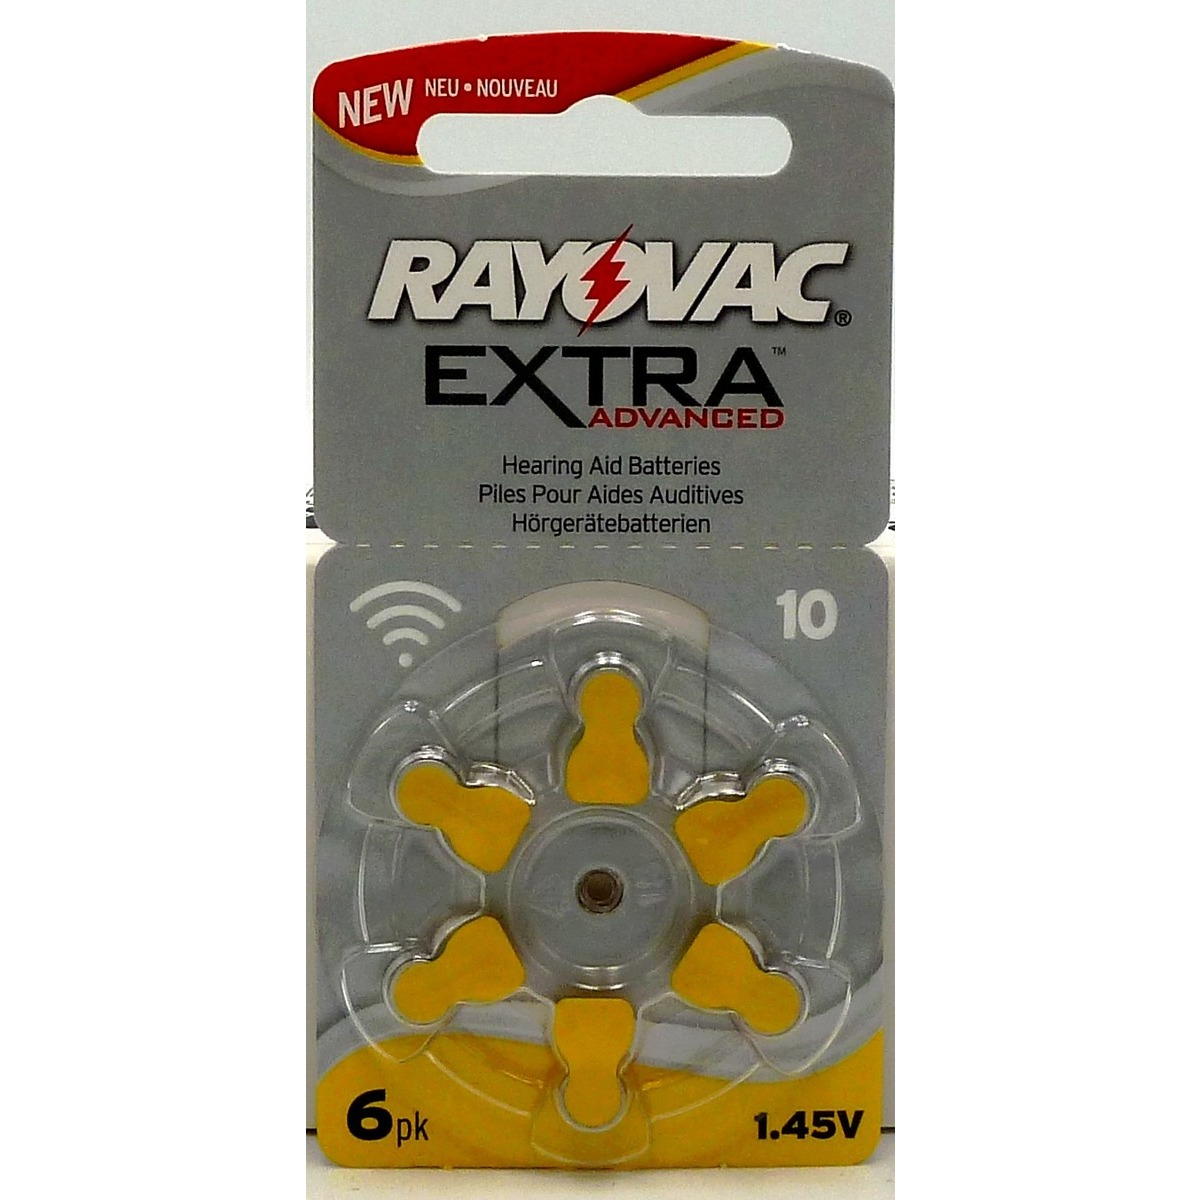 1 plaquette Rayovac Extra Advanced 10